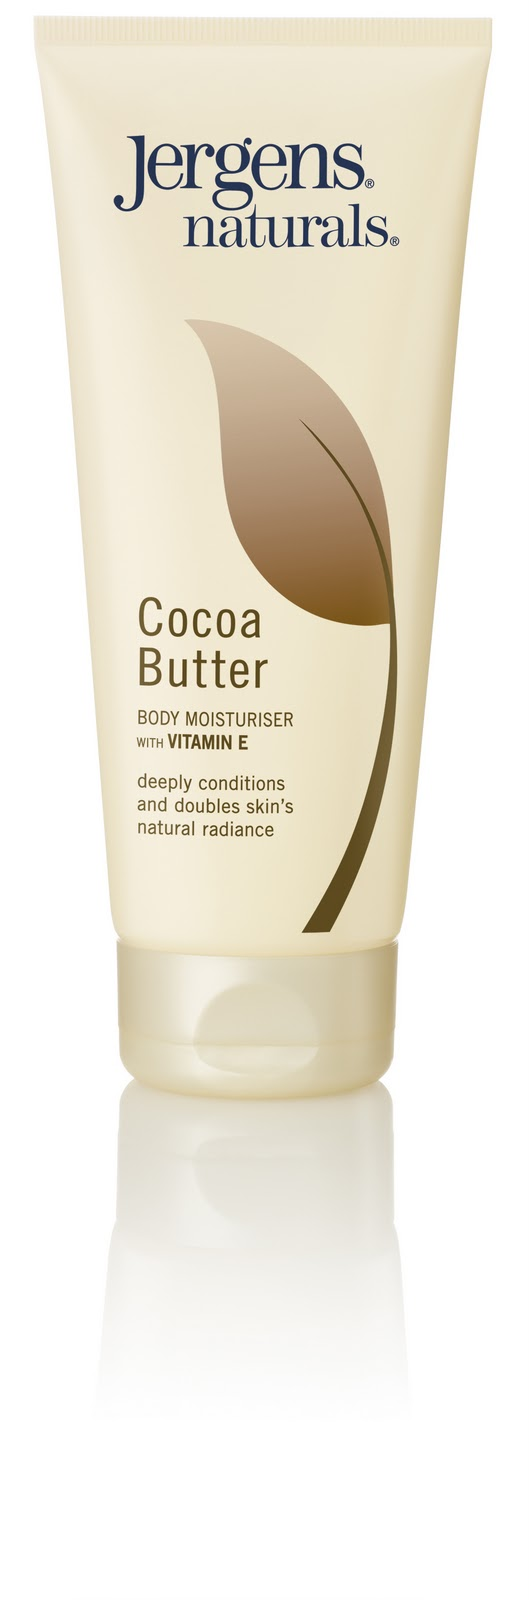 Cew Finds And Favourites Jergens Cocoa Butter Body Moisturiser Divine Cream Is Wonderfully Moisturing Without Being Sticky Or Tacky Keeps The Skin Hydrated All Day 96 Naturally Derived Smells